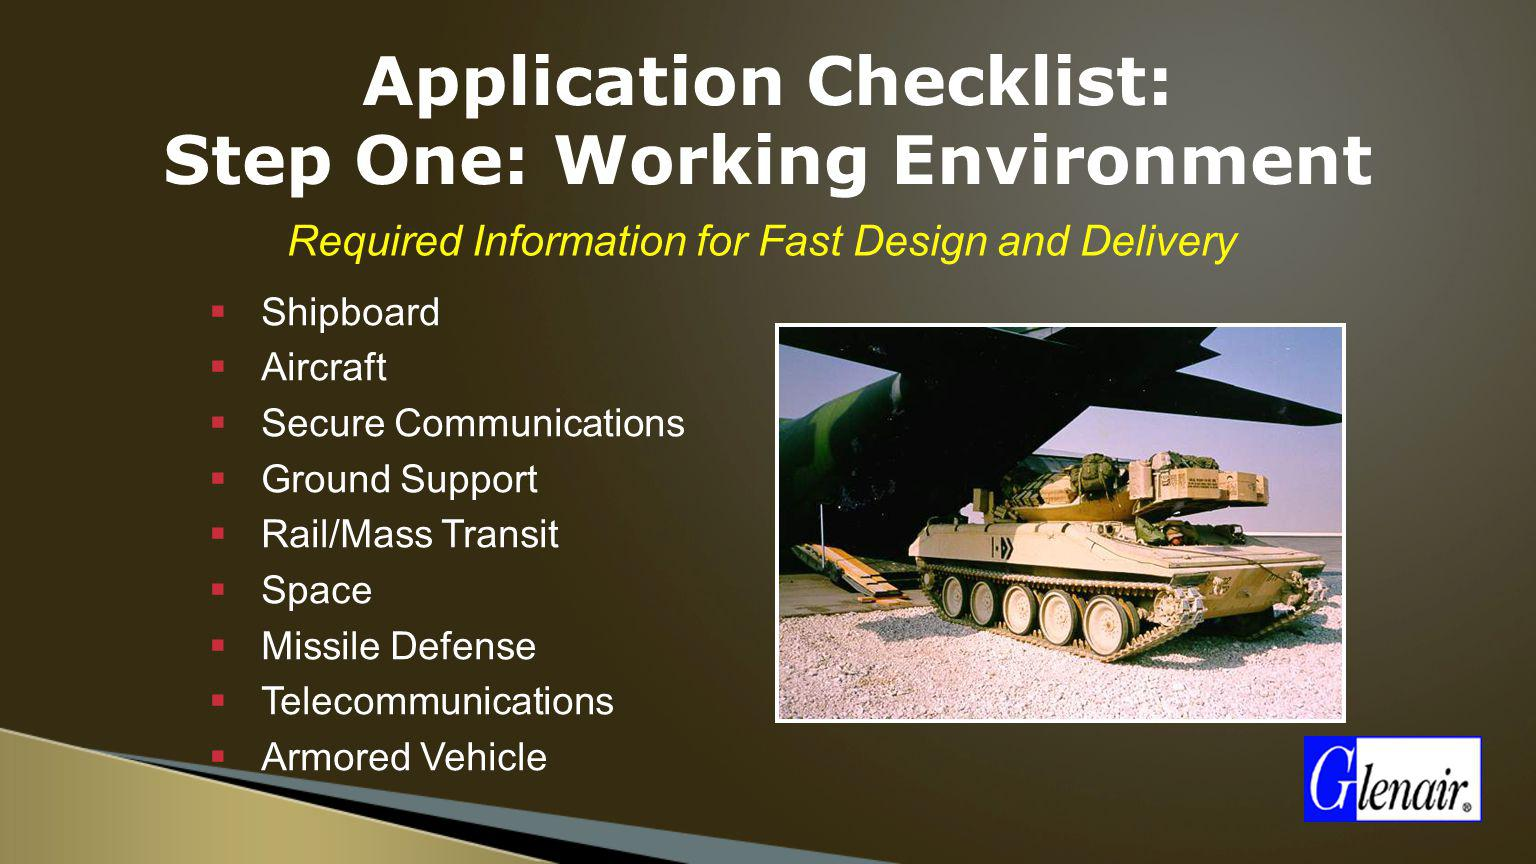 Application Checklist: Step One: Working Environment